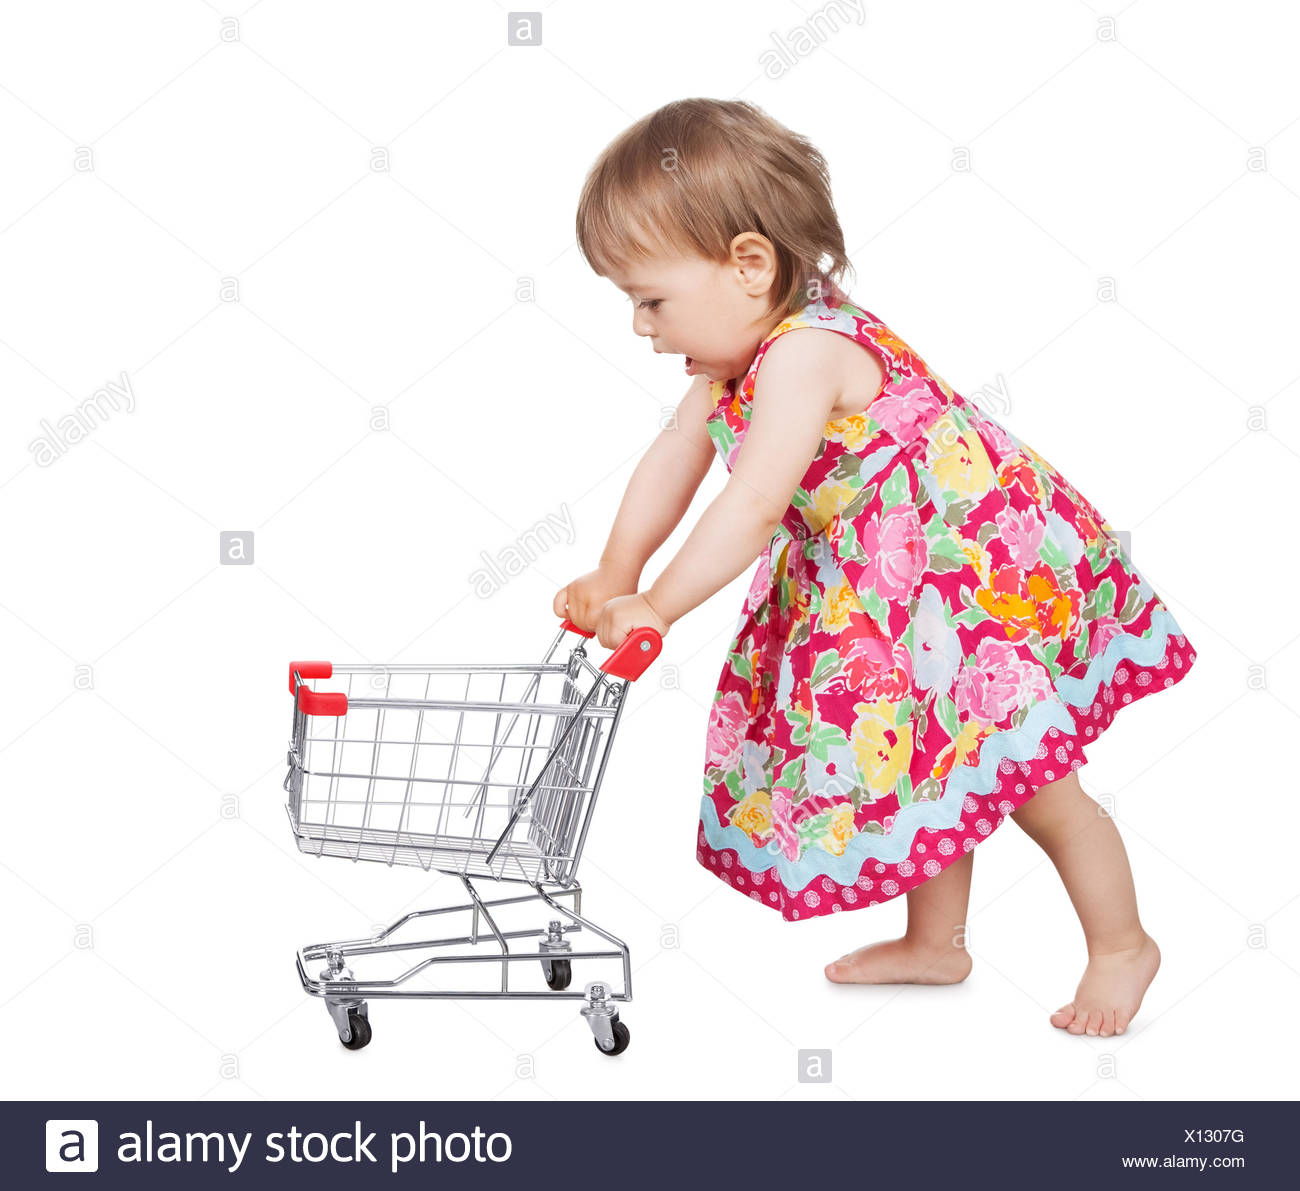 bda4fd0e27b3 Baby Girl Toy Shopping Cart Cut Out Stock Images   Pictures - Alamy